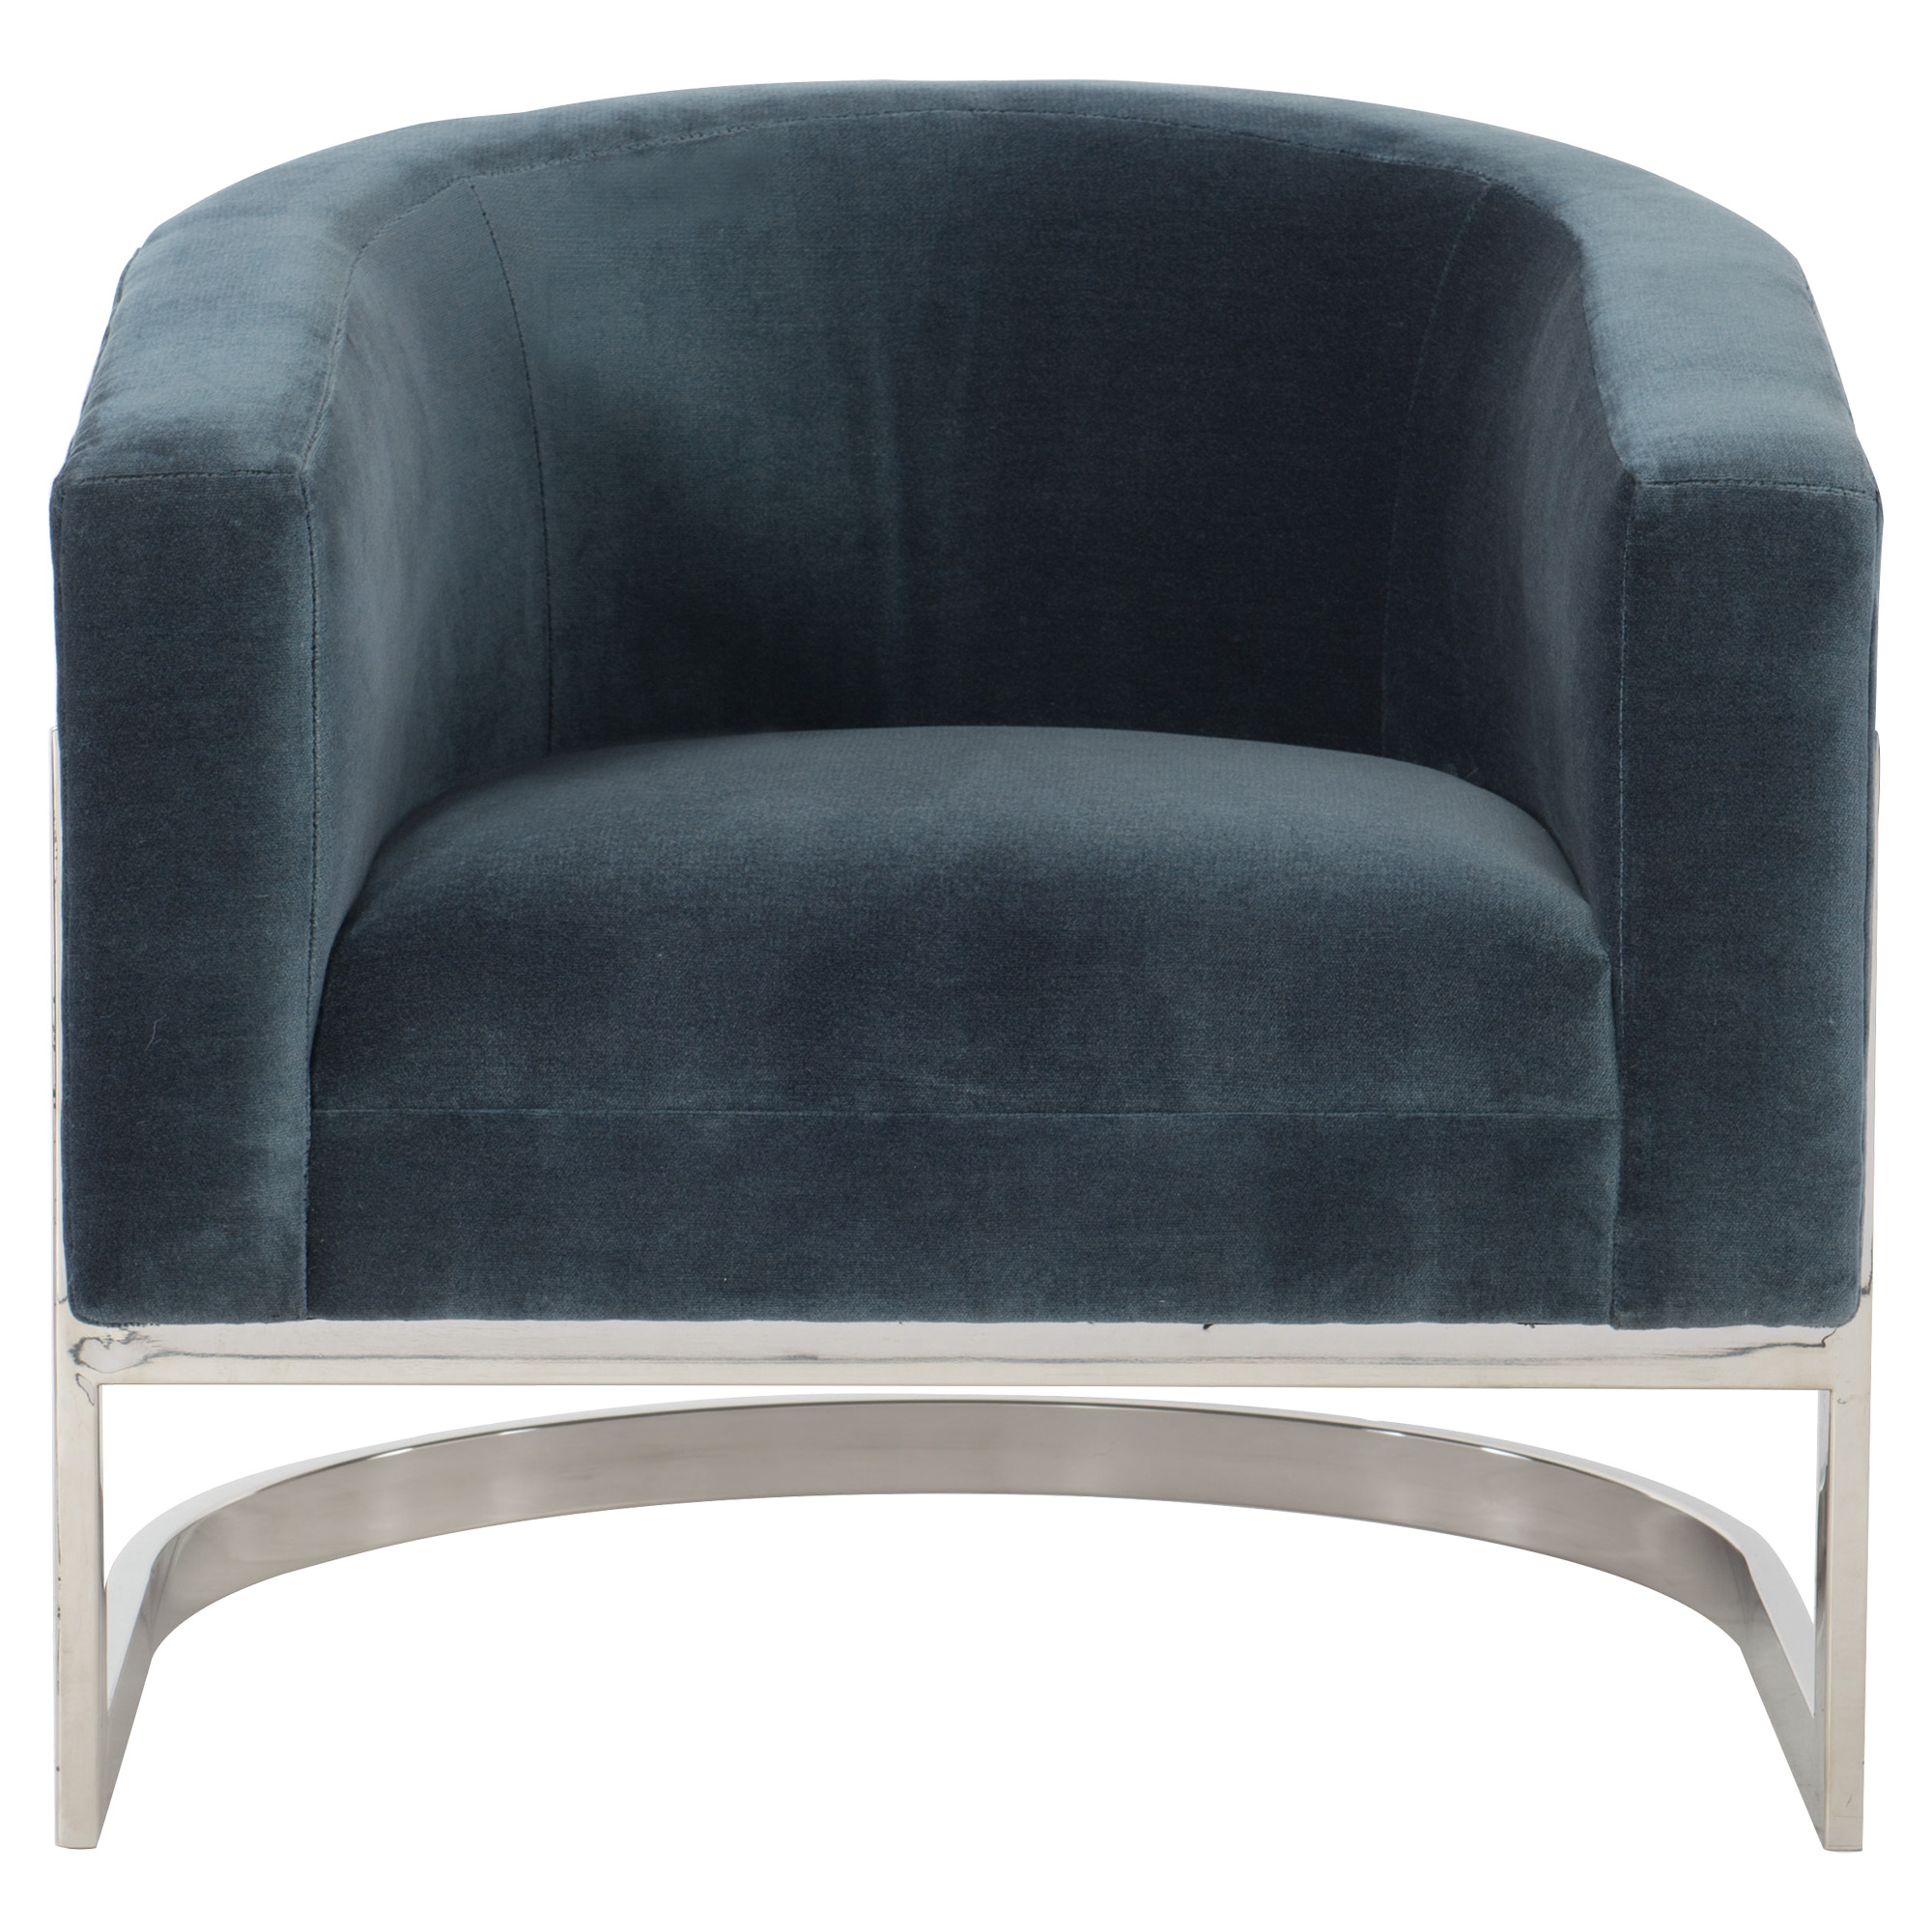 Cabrera Modern Classic Curved Steel Blue Velvet Armchair